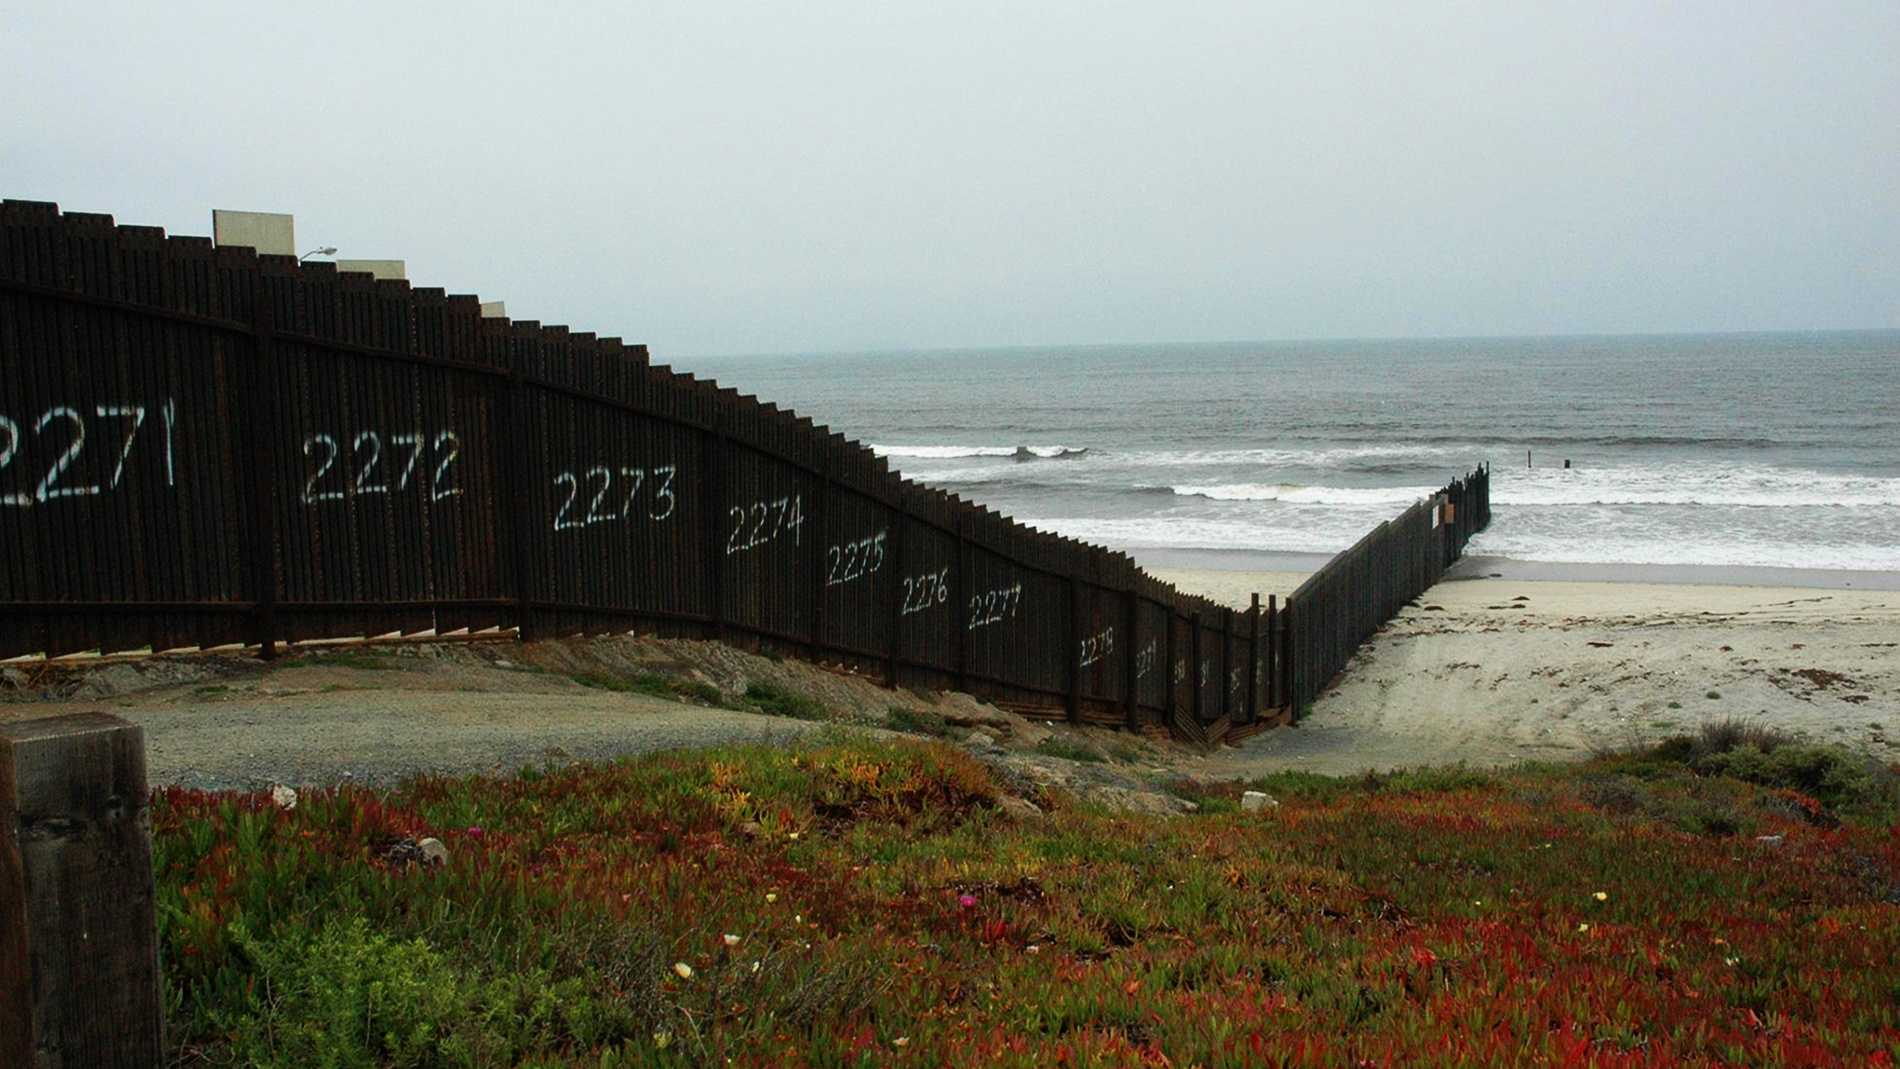 Border Field State Park, California is seen. Playas de Tijuana, Mexico is on the other side of the border fence.